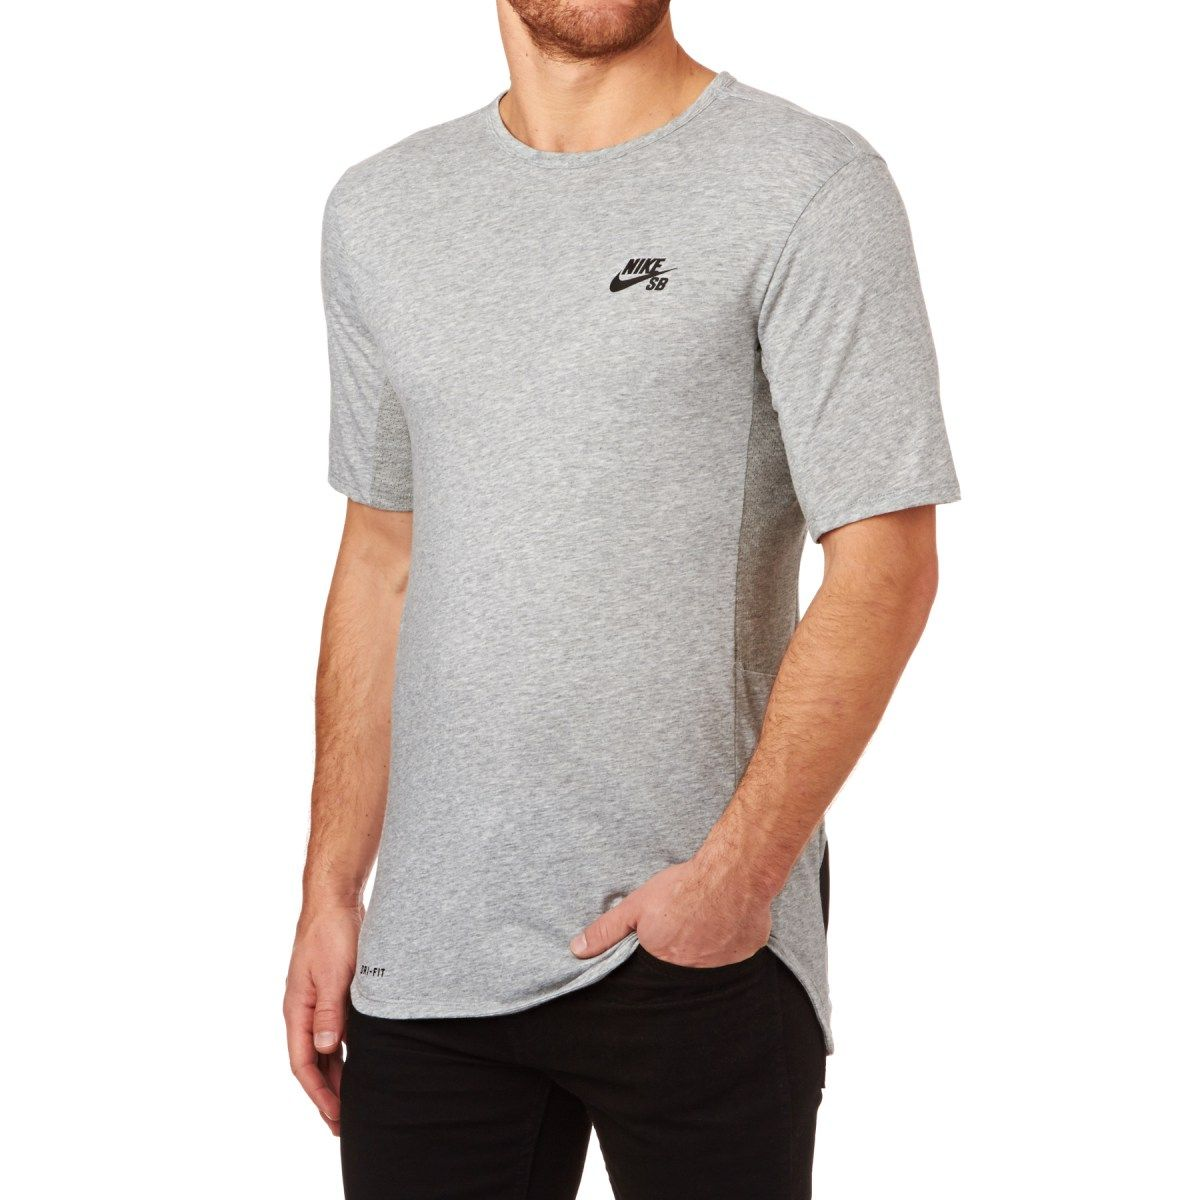 Men's Nike Skateboarding T-shirts - Nike Skateboarding SB Skyline Dri-fit  Cool Graphic